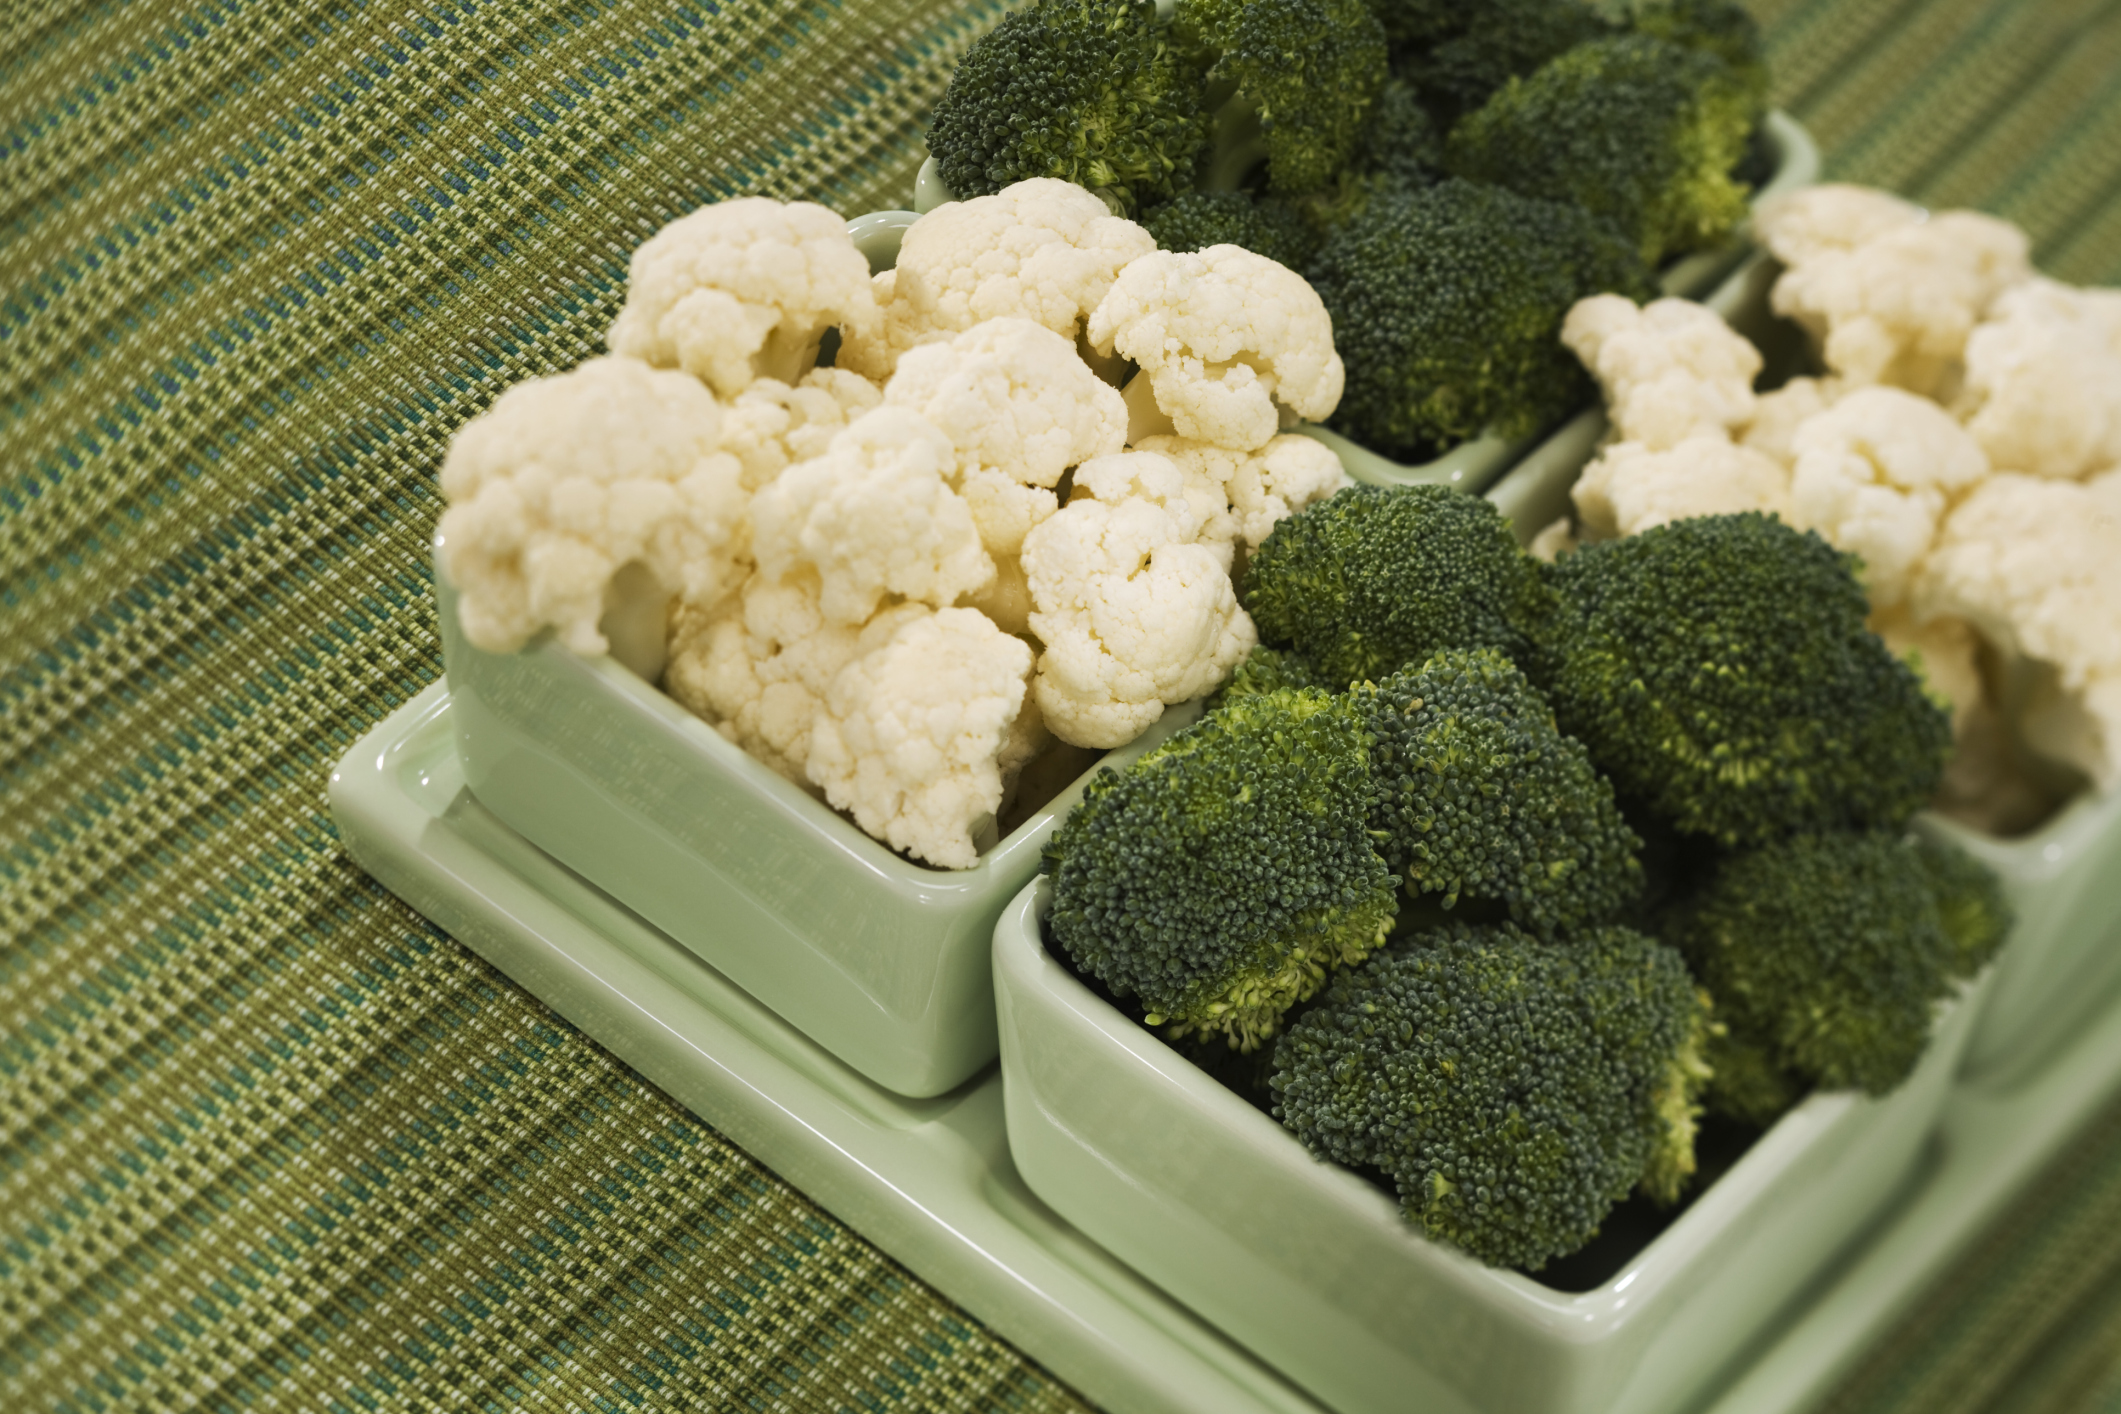 Broccoli and cauliflower are loaded with phytochemicals.